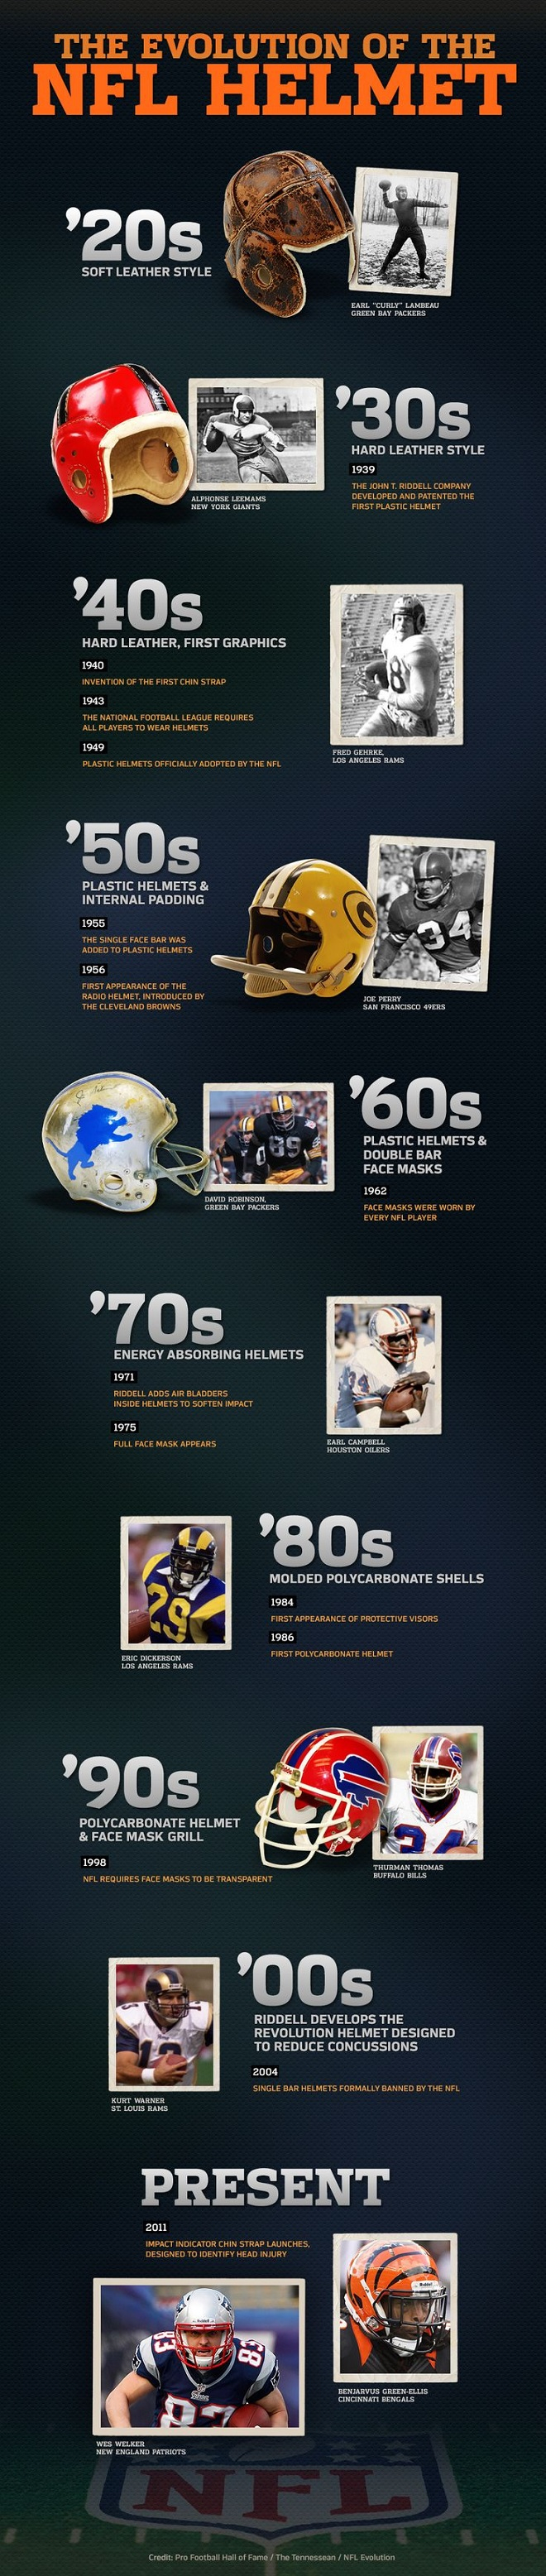 Evolution of the NFL Helmet Infographic